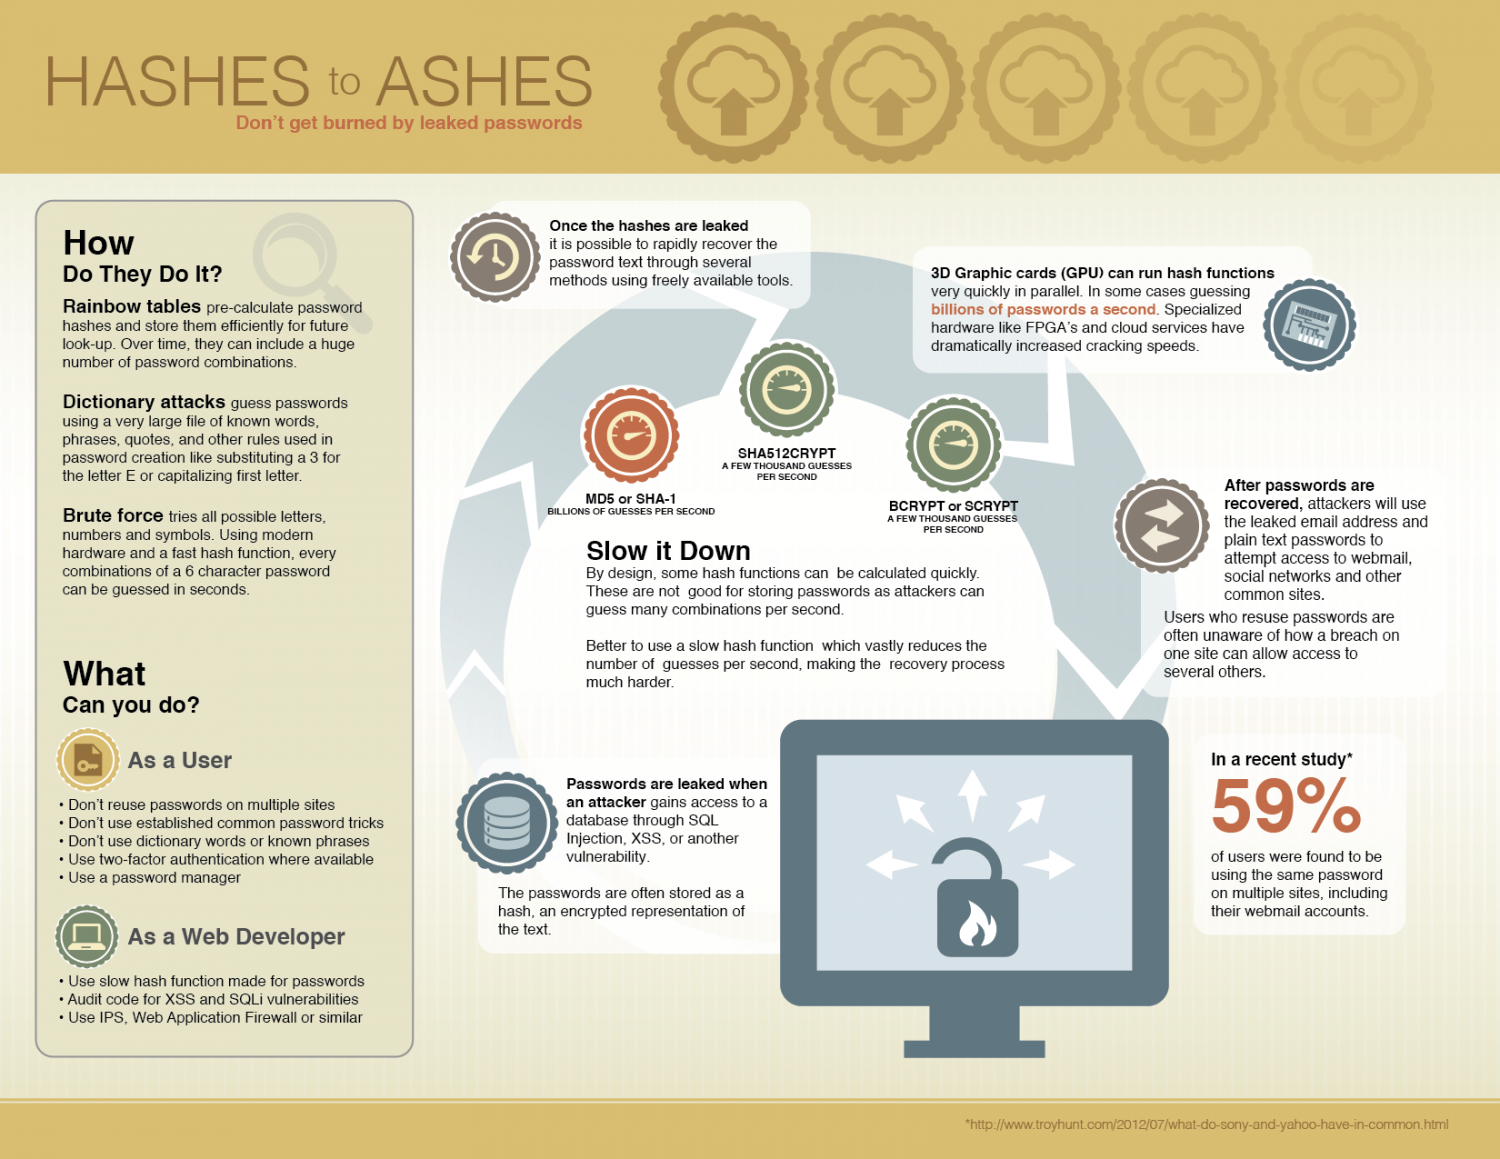 Hashes to Ashes - don't get burned by leaked passwords Infographic